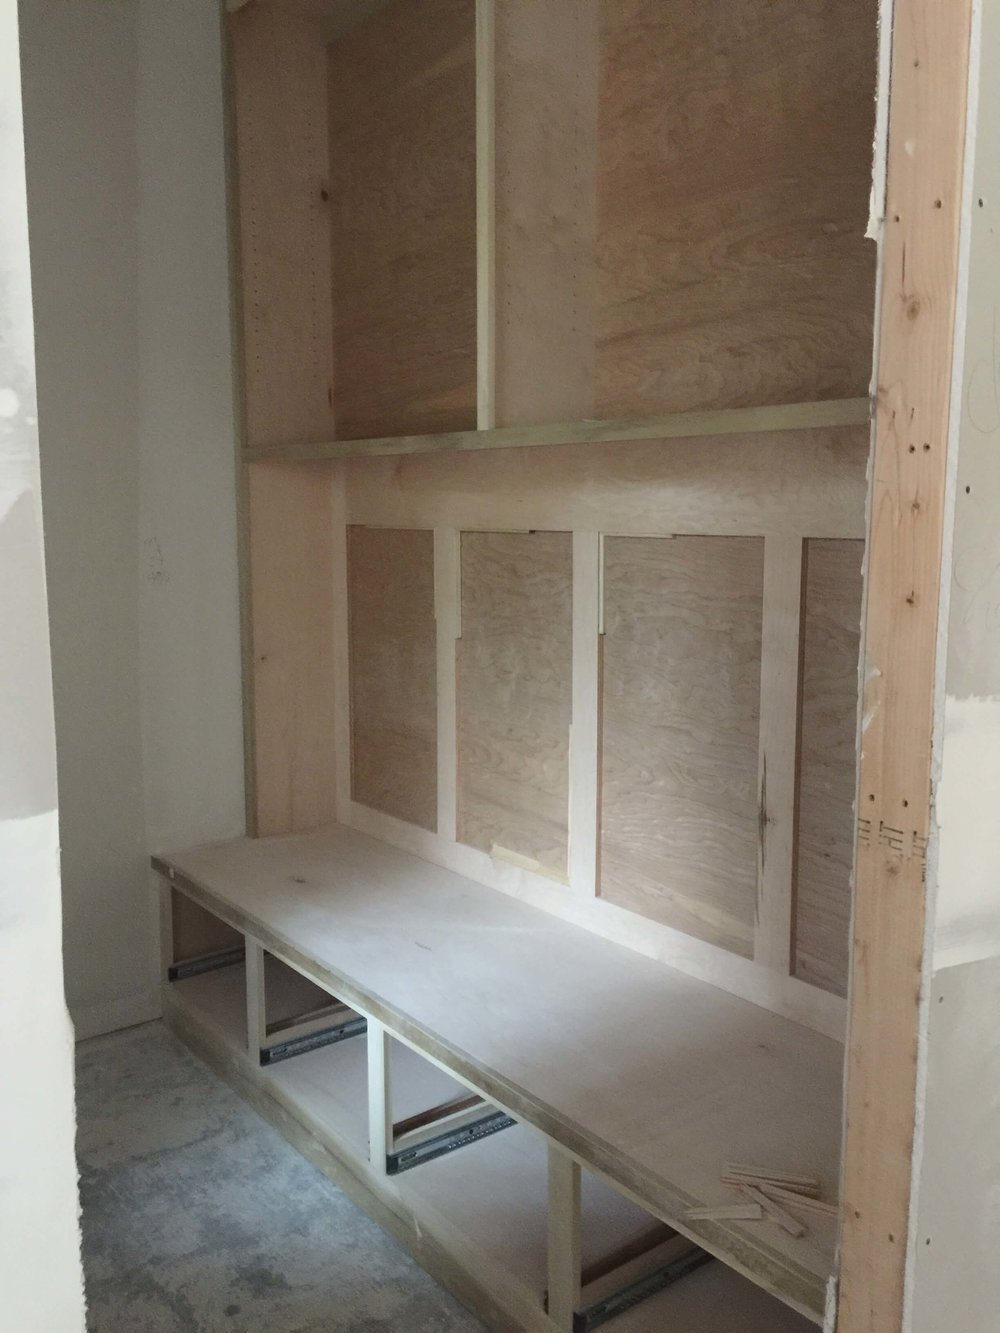 IN PROGRESS - Mud room bench area for kids' backpacks #mudroom #bench